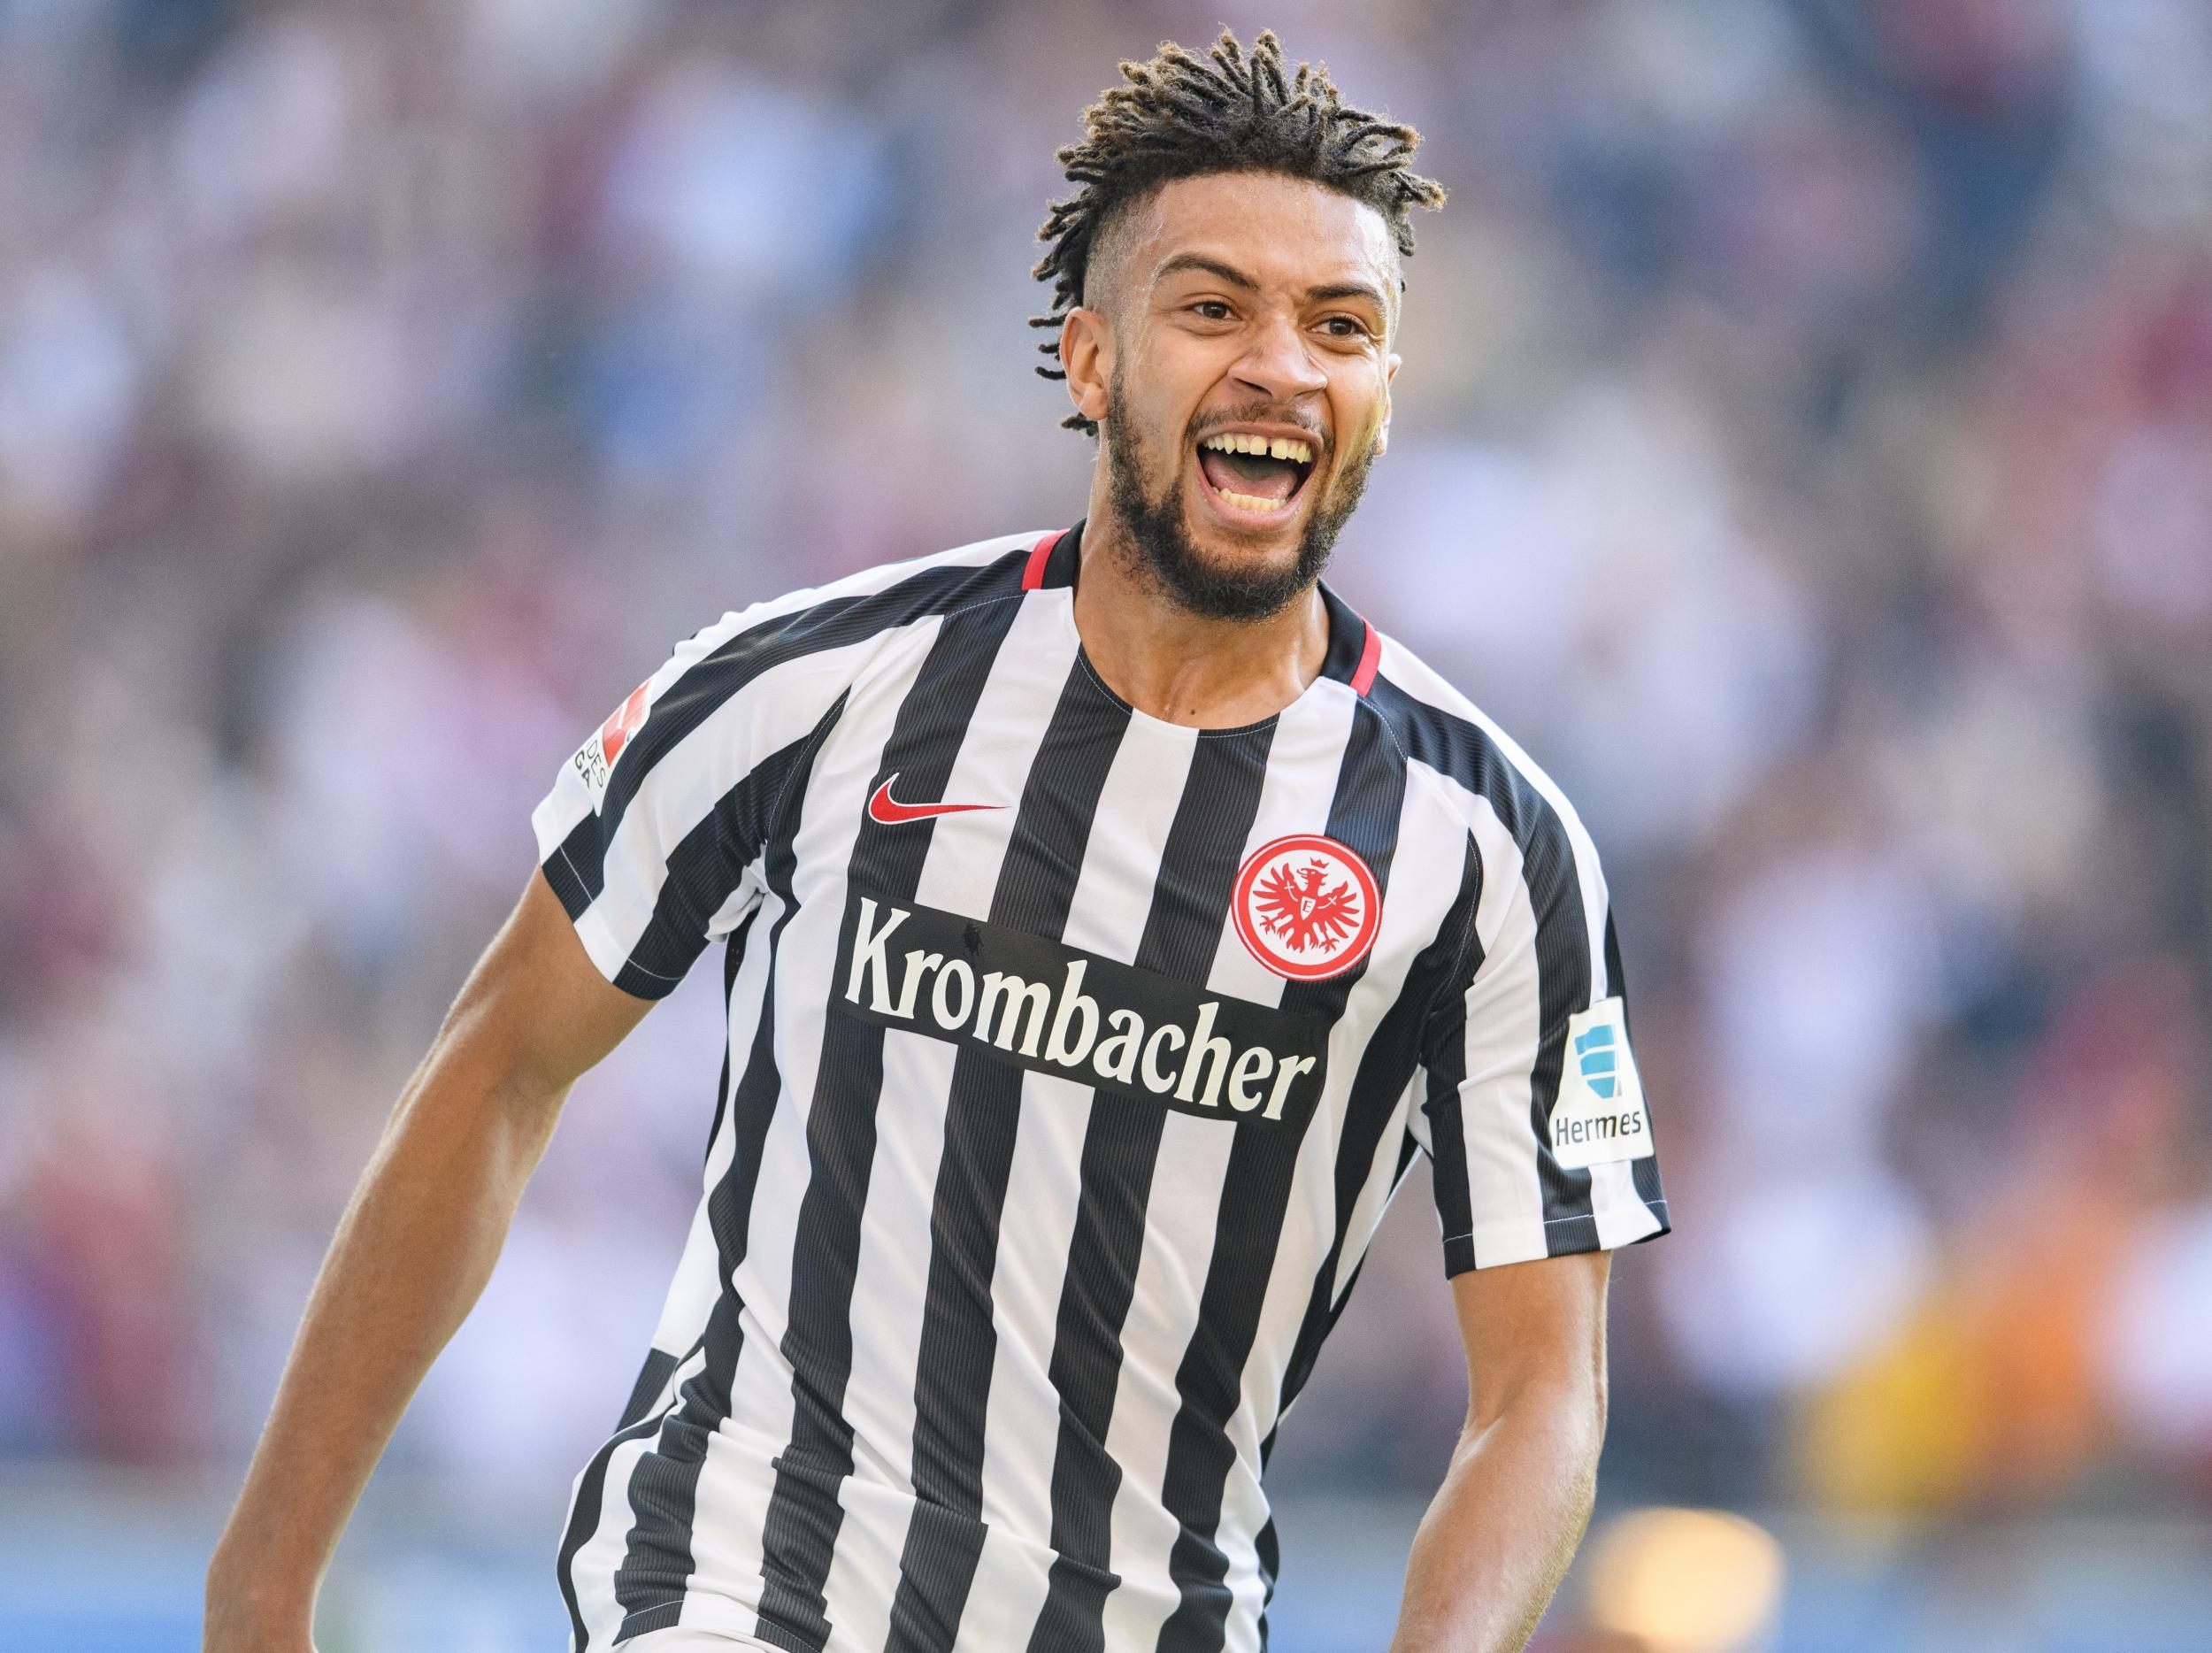 John Terry helped me through tough times away on loan, says Chelsea defender Michael Hector